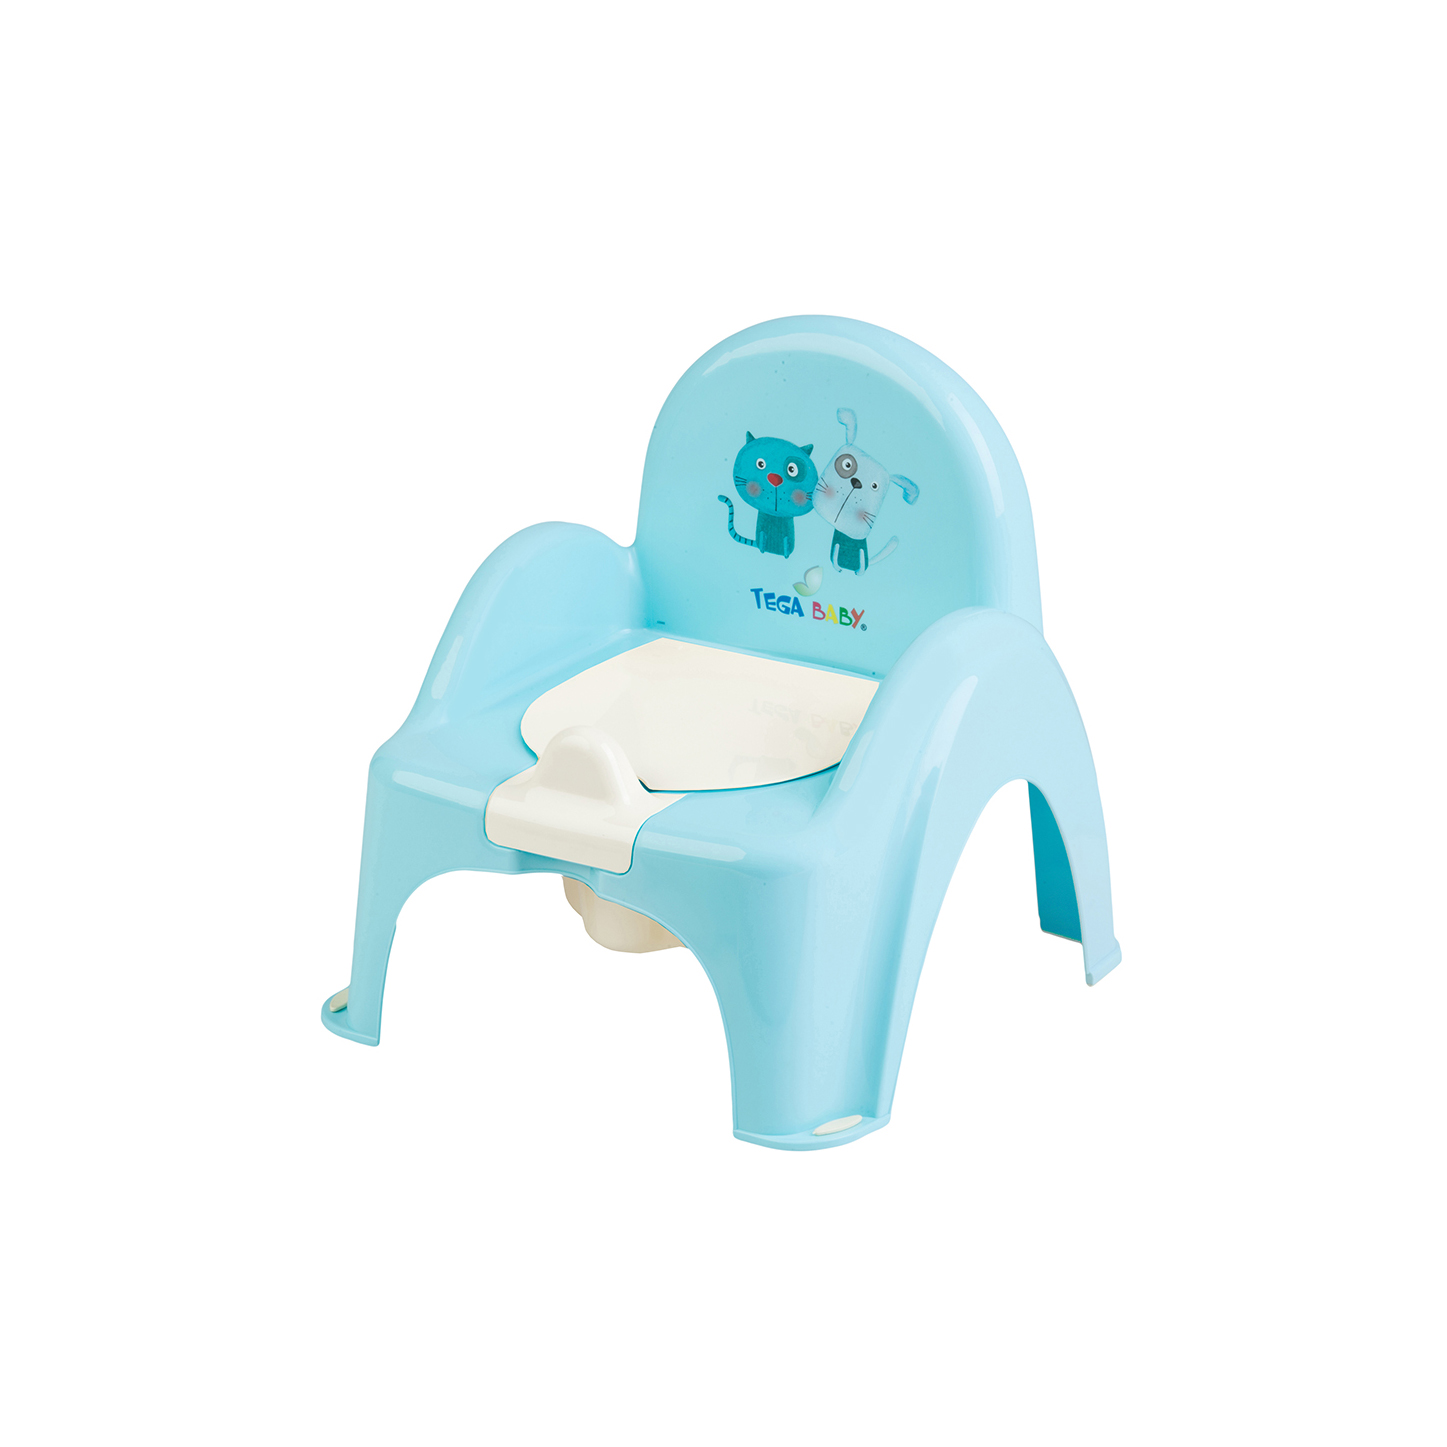 POT - CHAISE DE TOILETTE MUSICAL POUR ENFANT DOG &CAT Pot - Chaise... par LeGuide.com Publicité